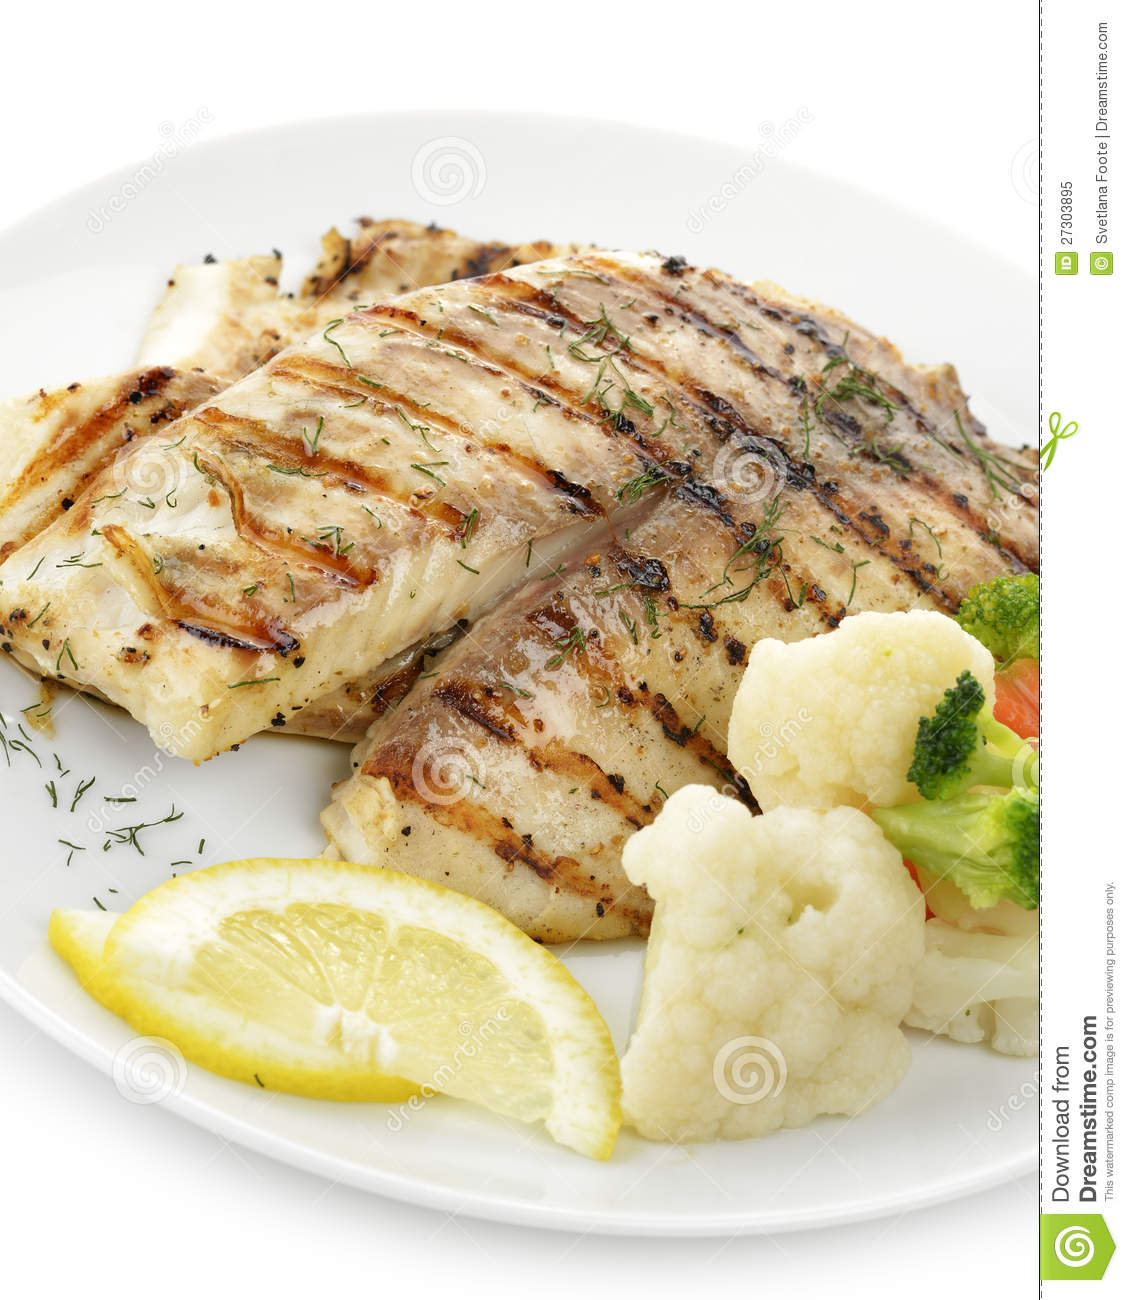 Grilled fish fillet stock image image of plate closeup for How to grill fish fillet